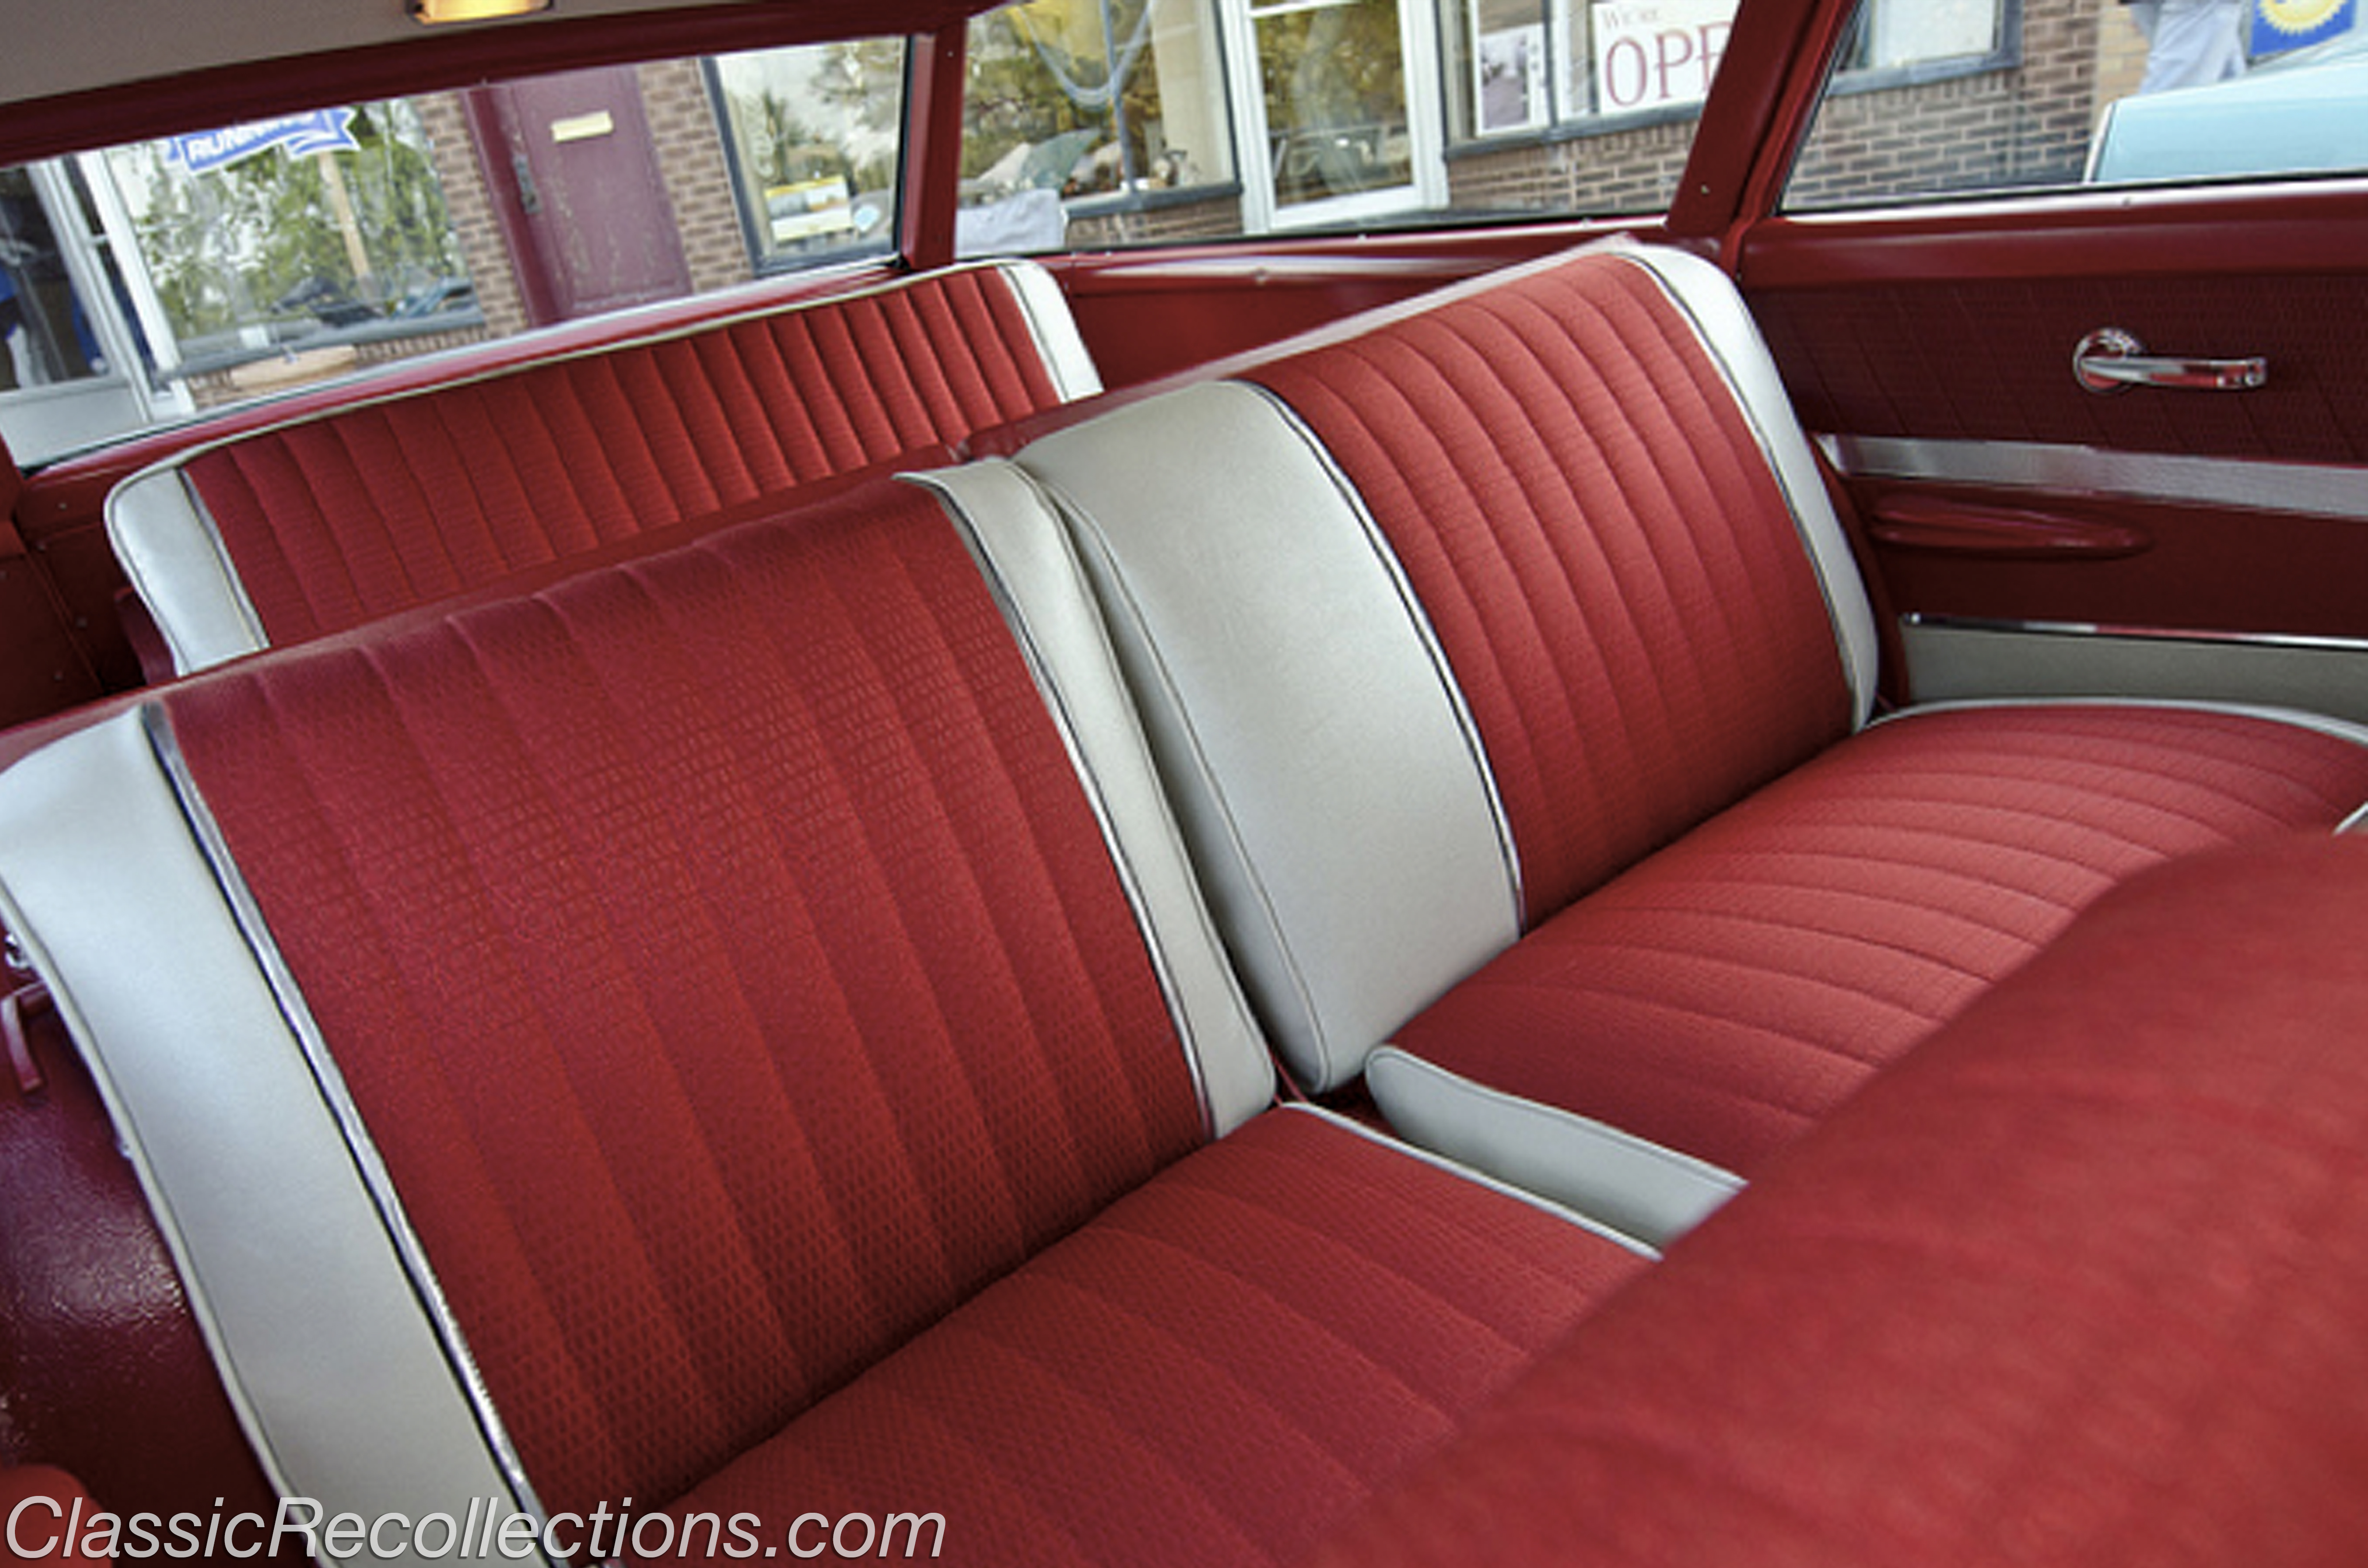 Feature 1961 Ford Country Squire Station Wagon Classic Recollections 1954 This Has Been Fully Restored